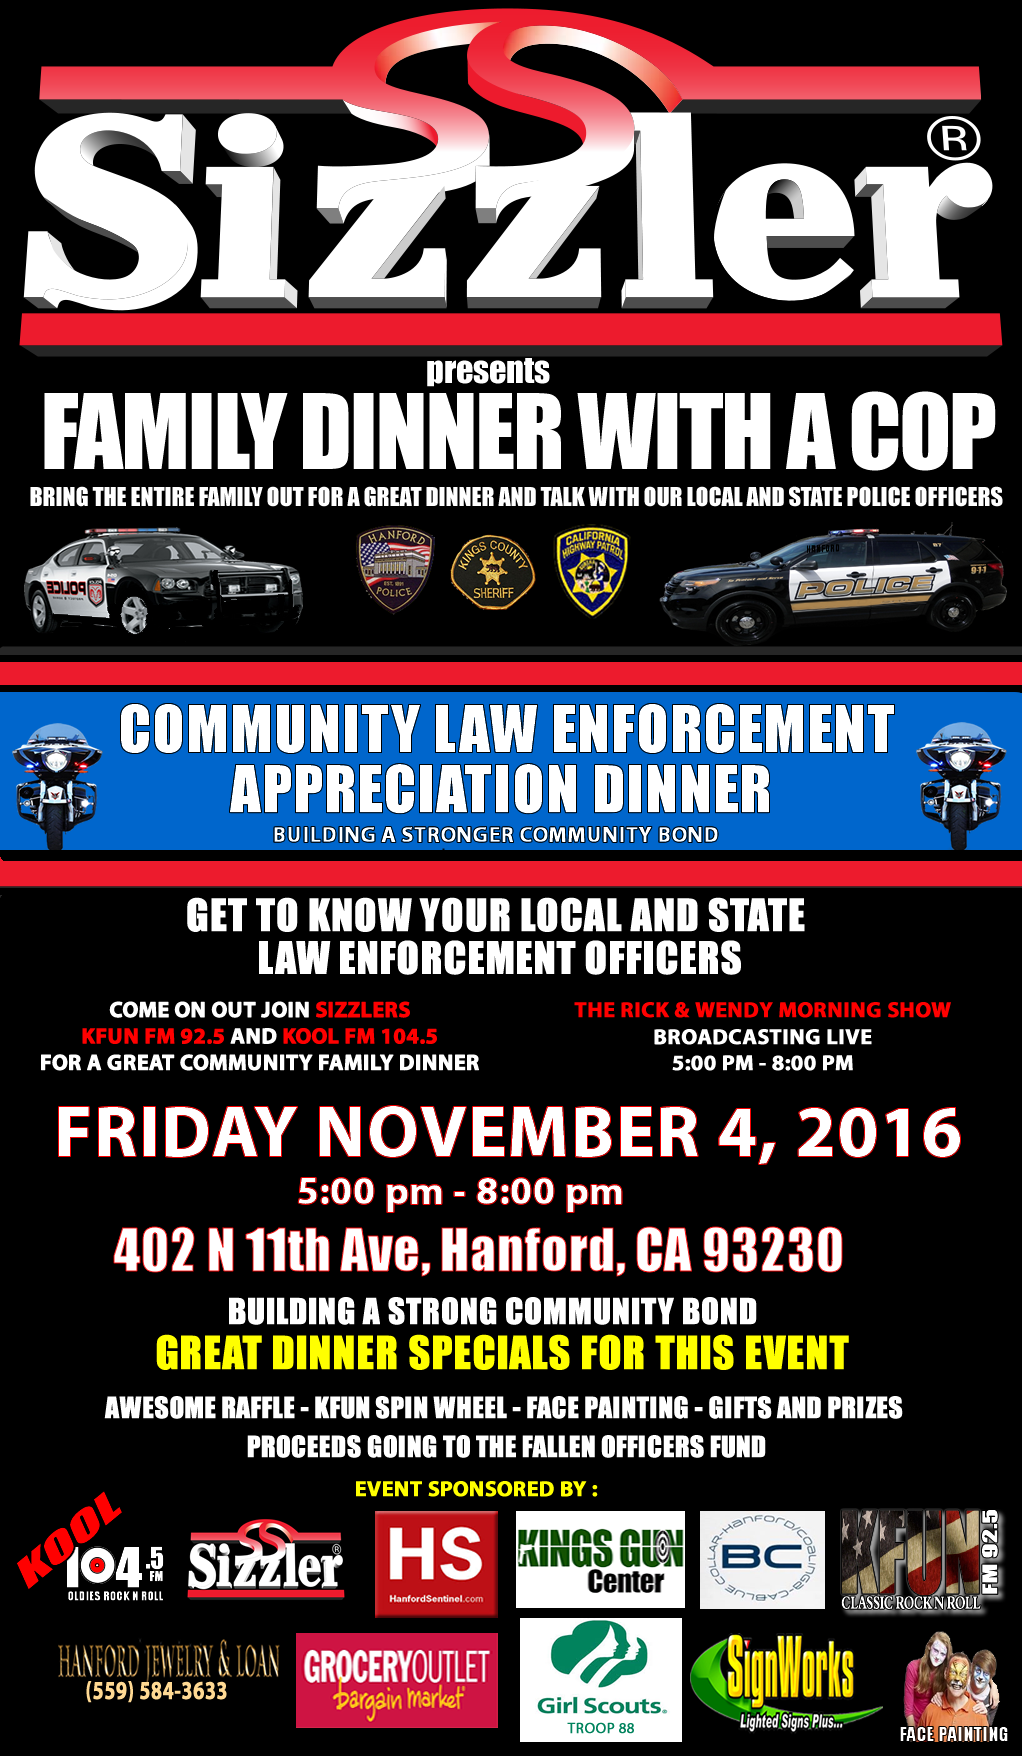 sizzlers-dinner-with-a-cop